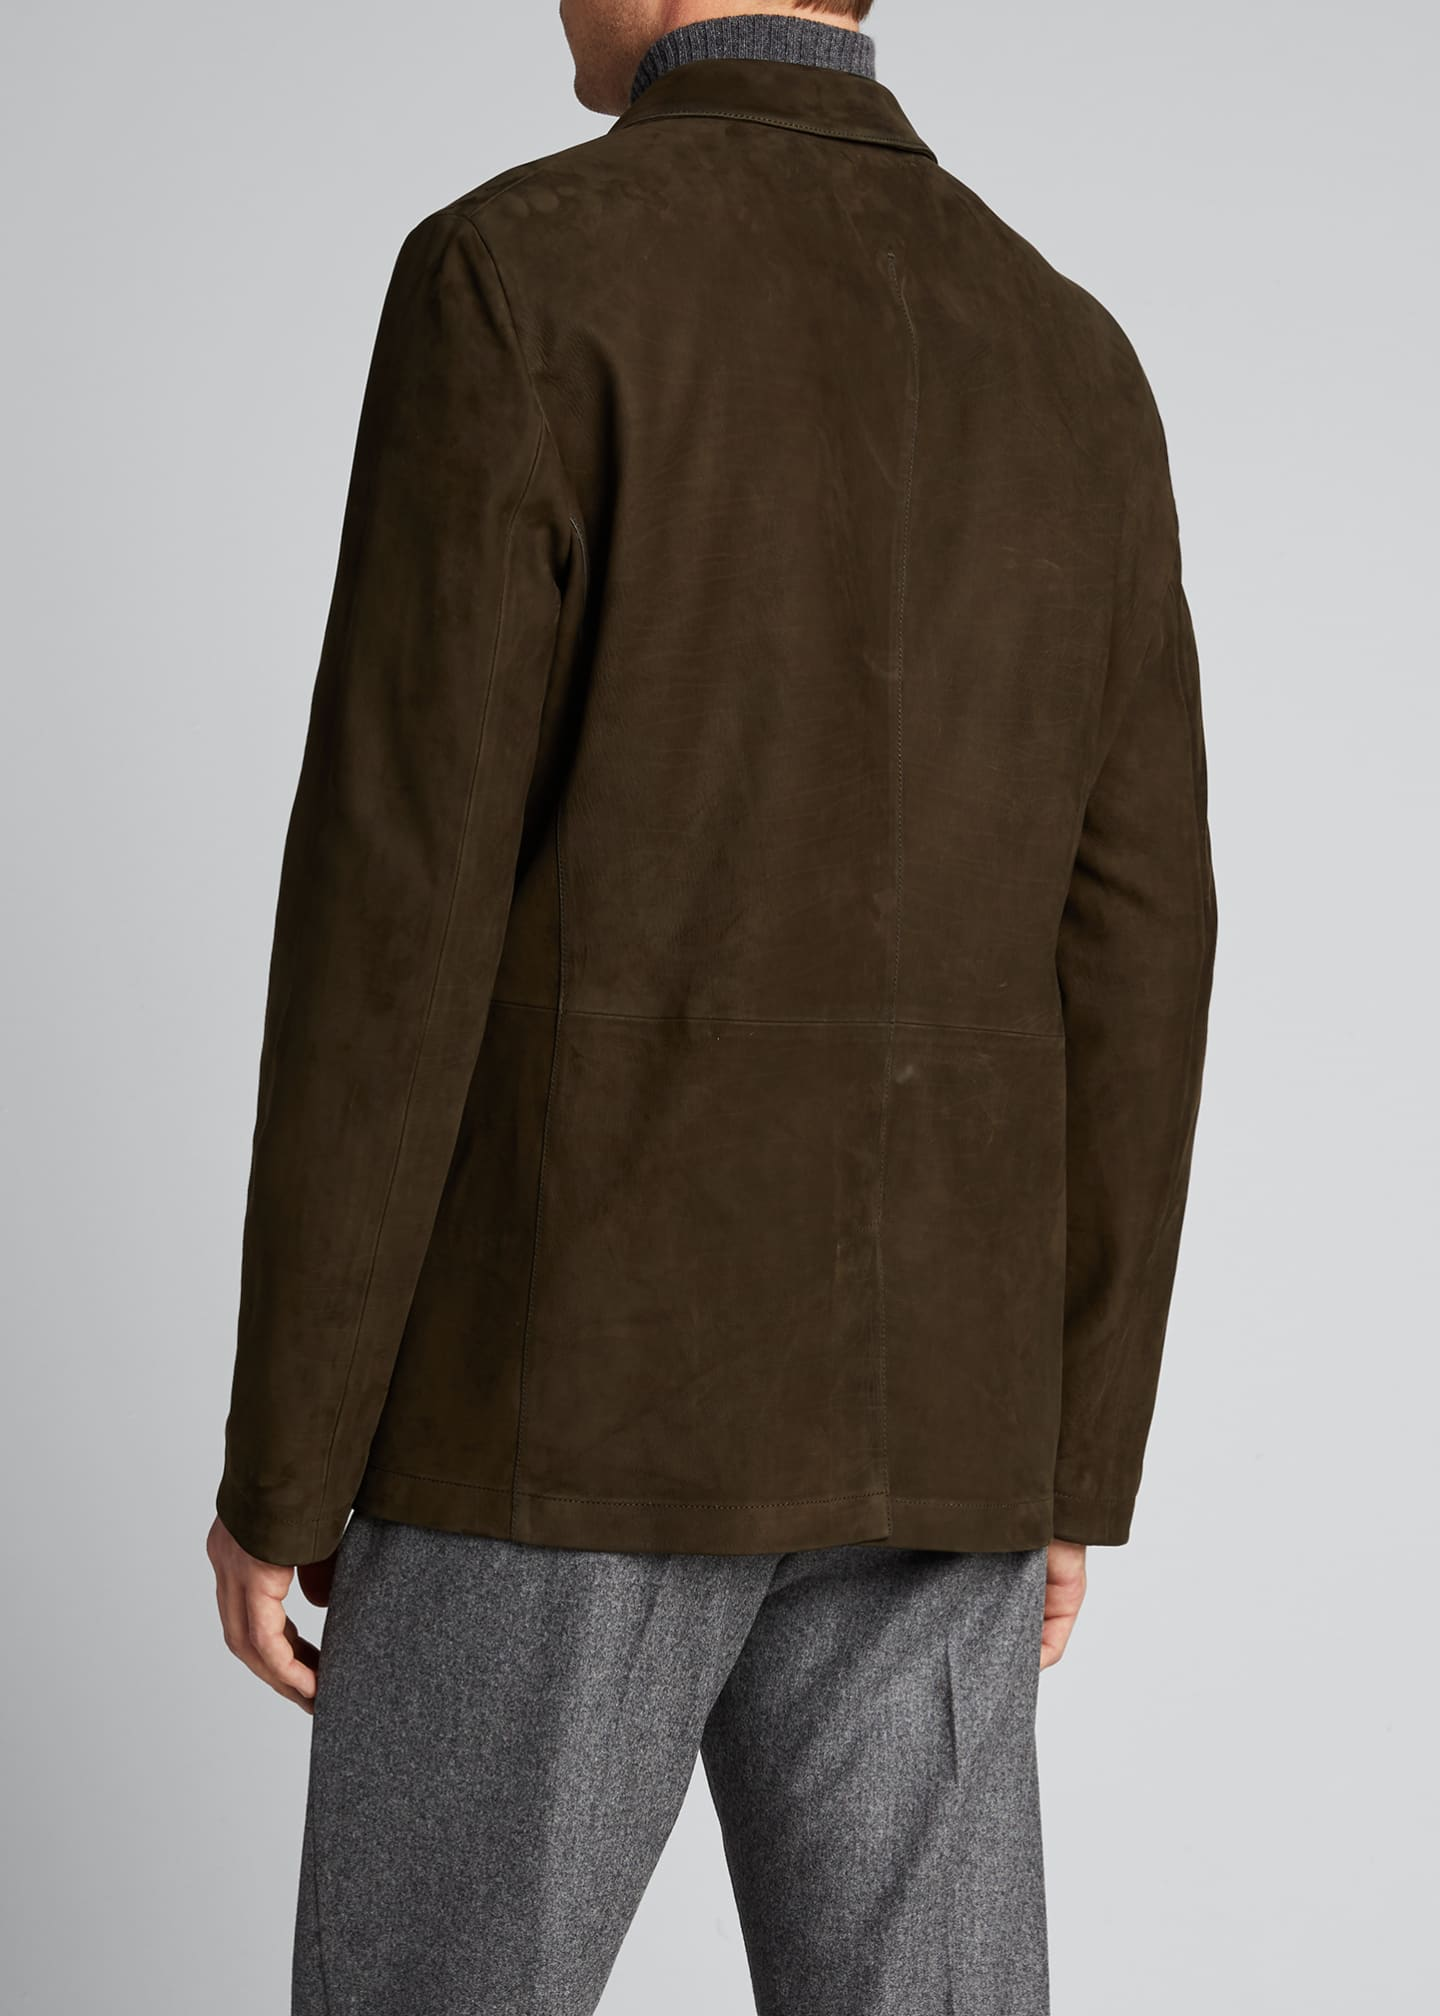 Image 2 of 5: Men's Two-Button Leather Jacket